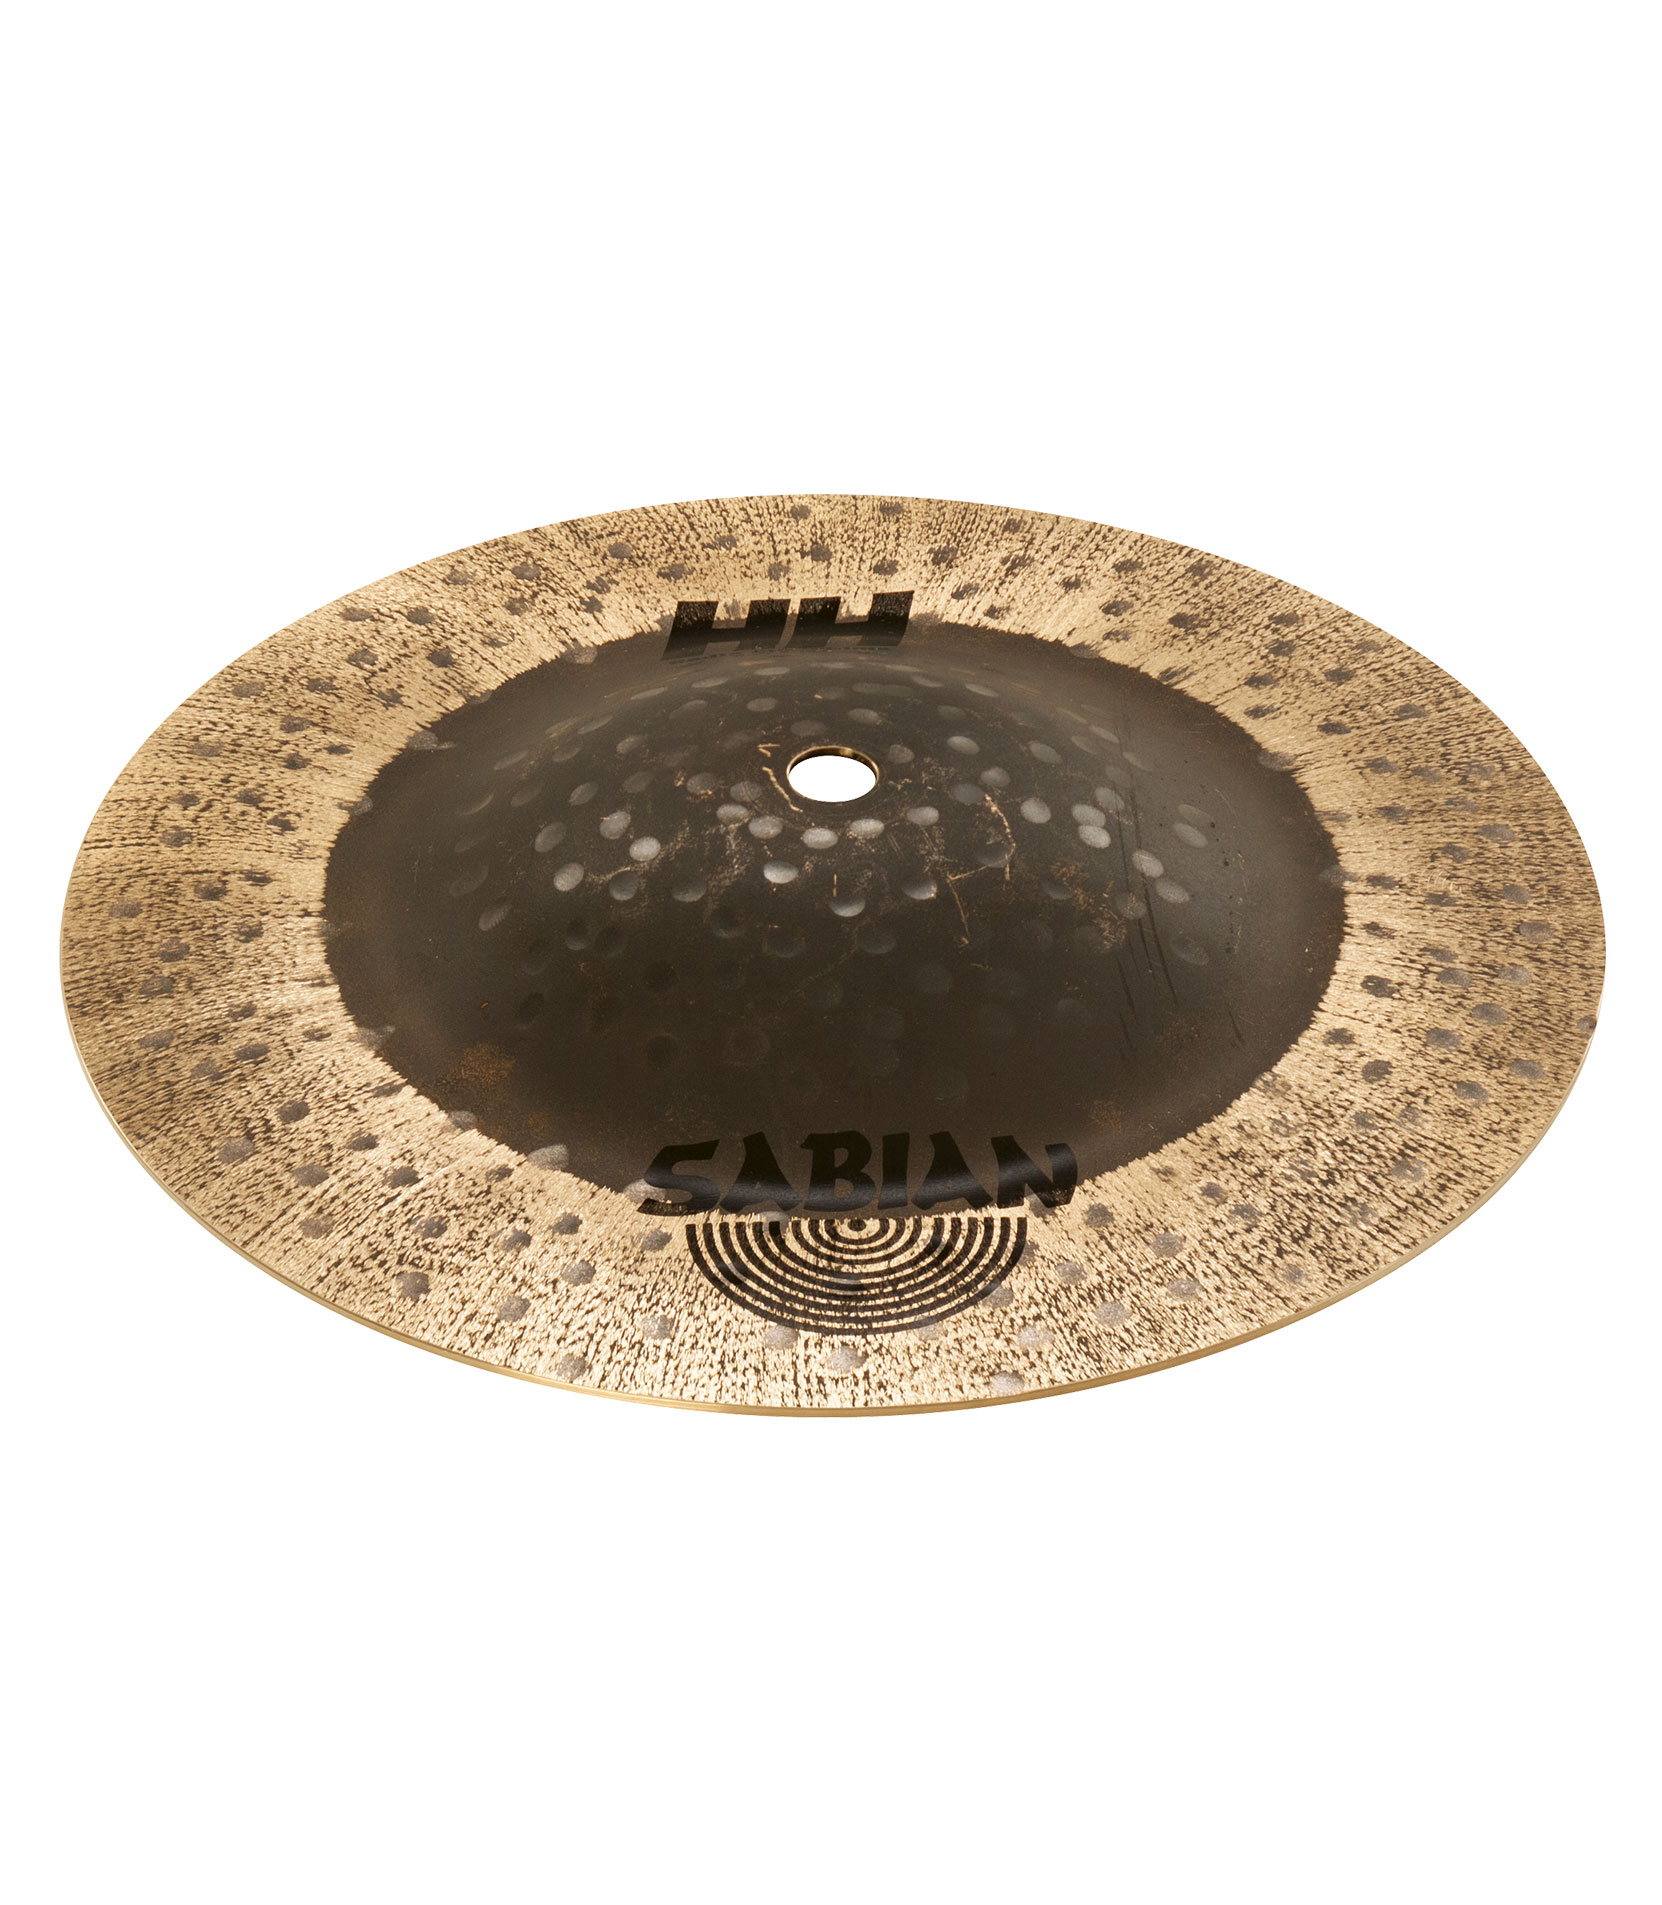 Buy Sabian - 9 HH Radia Cup Chime